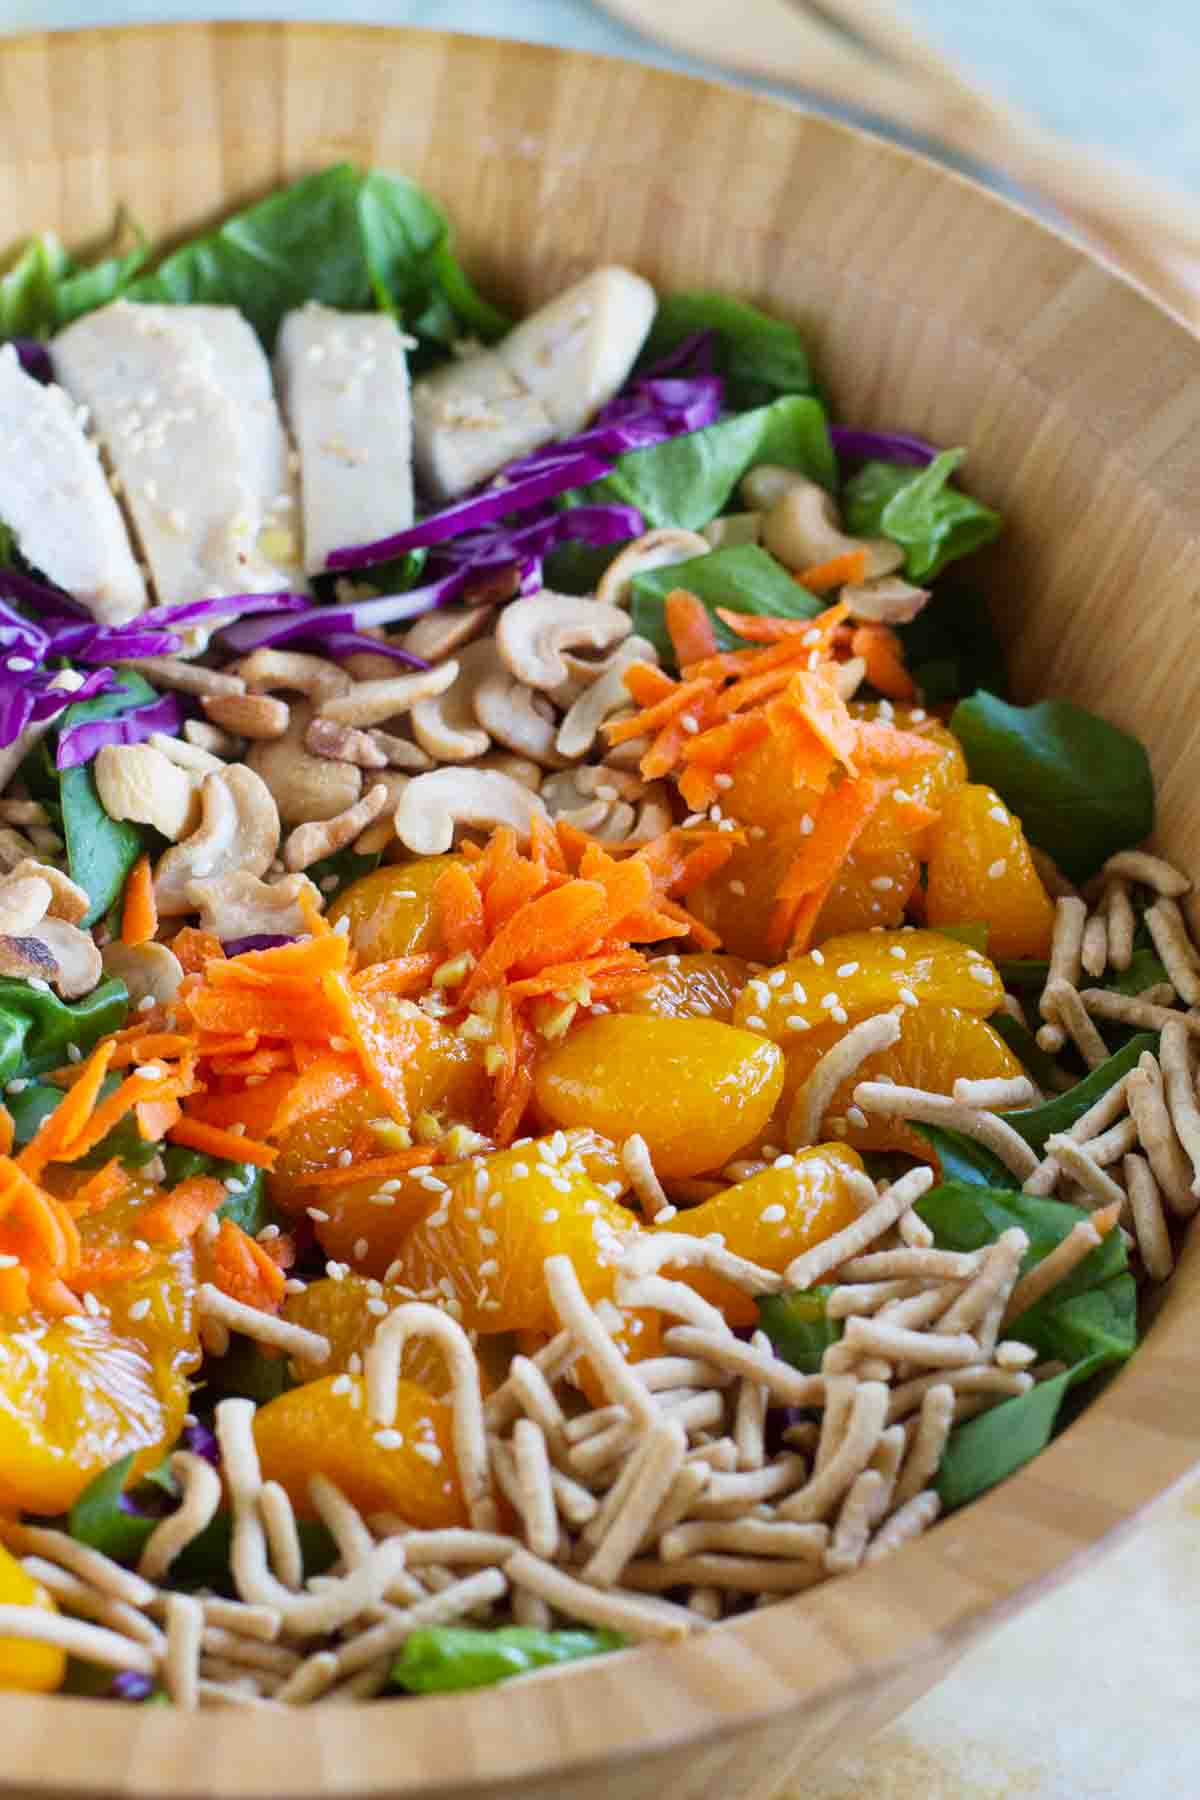 Asian Chicken Salad in a wooden bowl